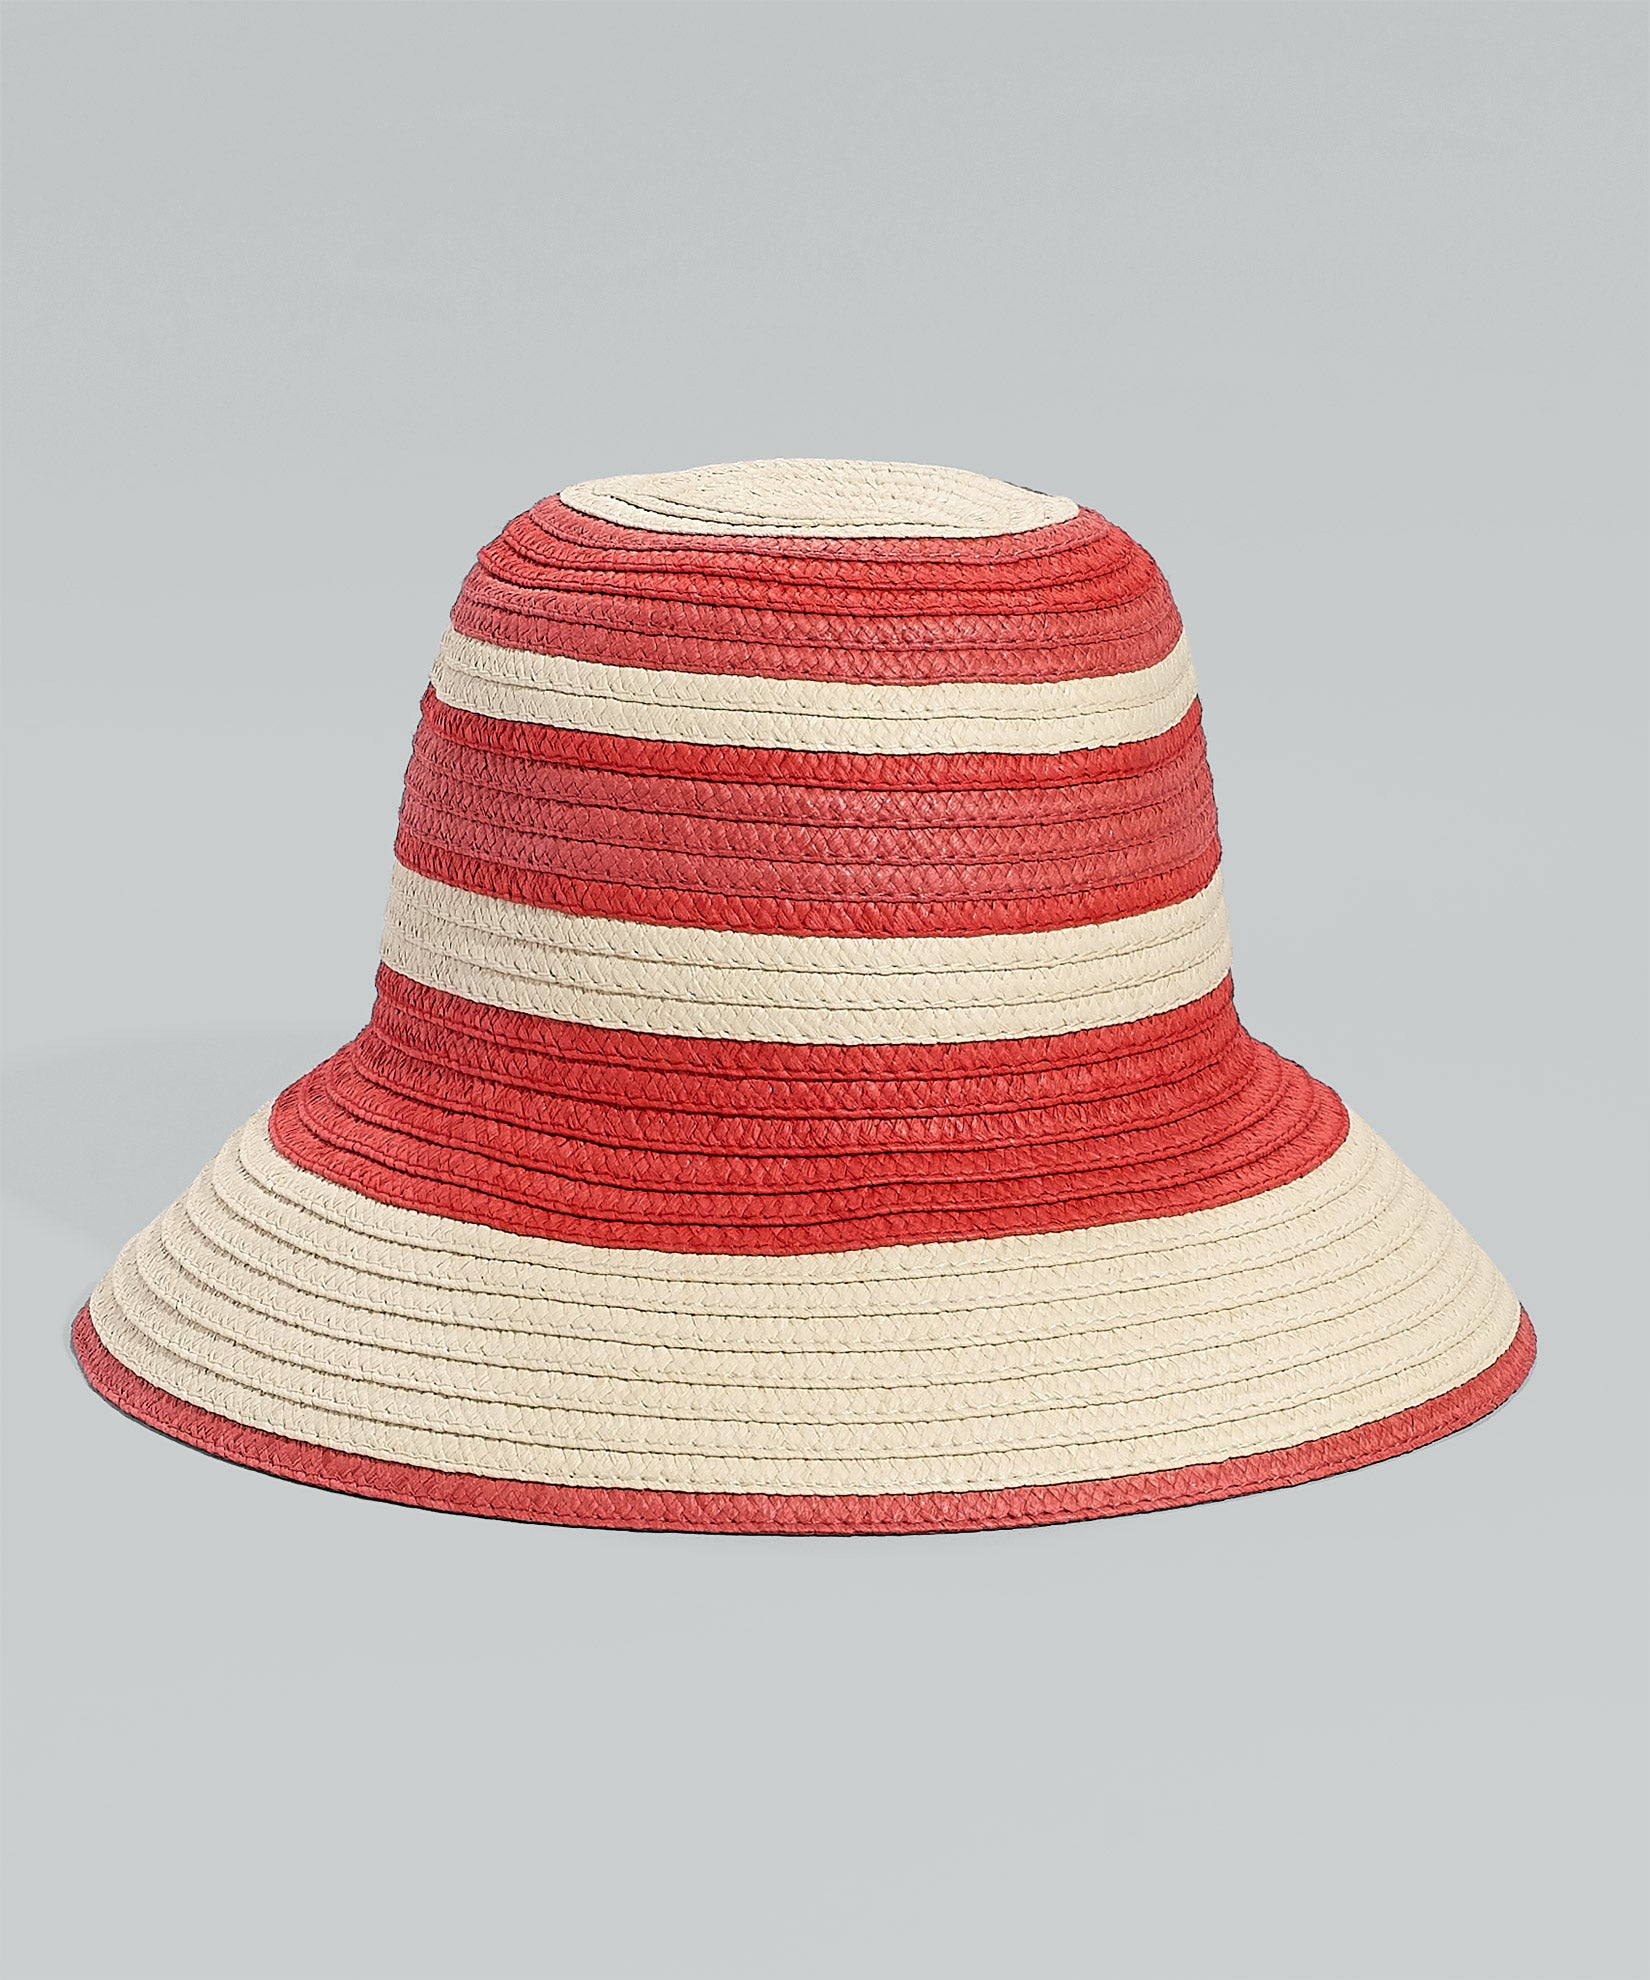 Passion Flower - Striped Tall Cloche